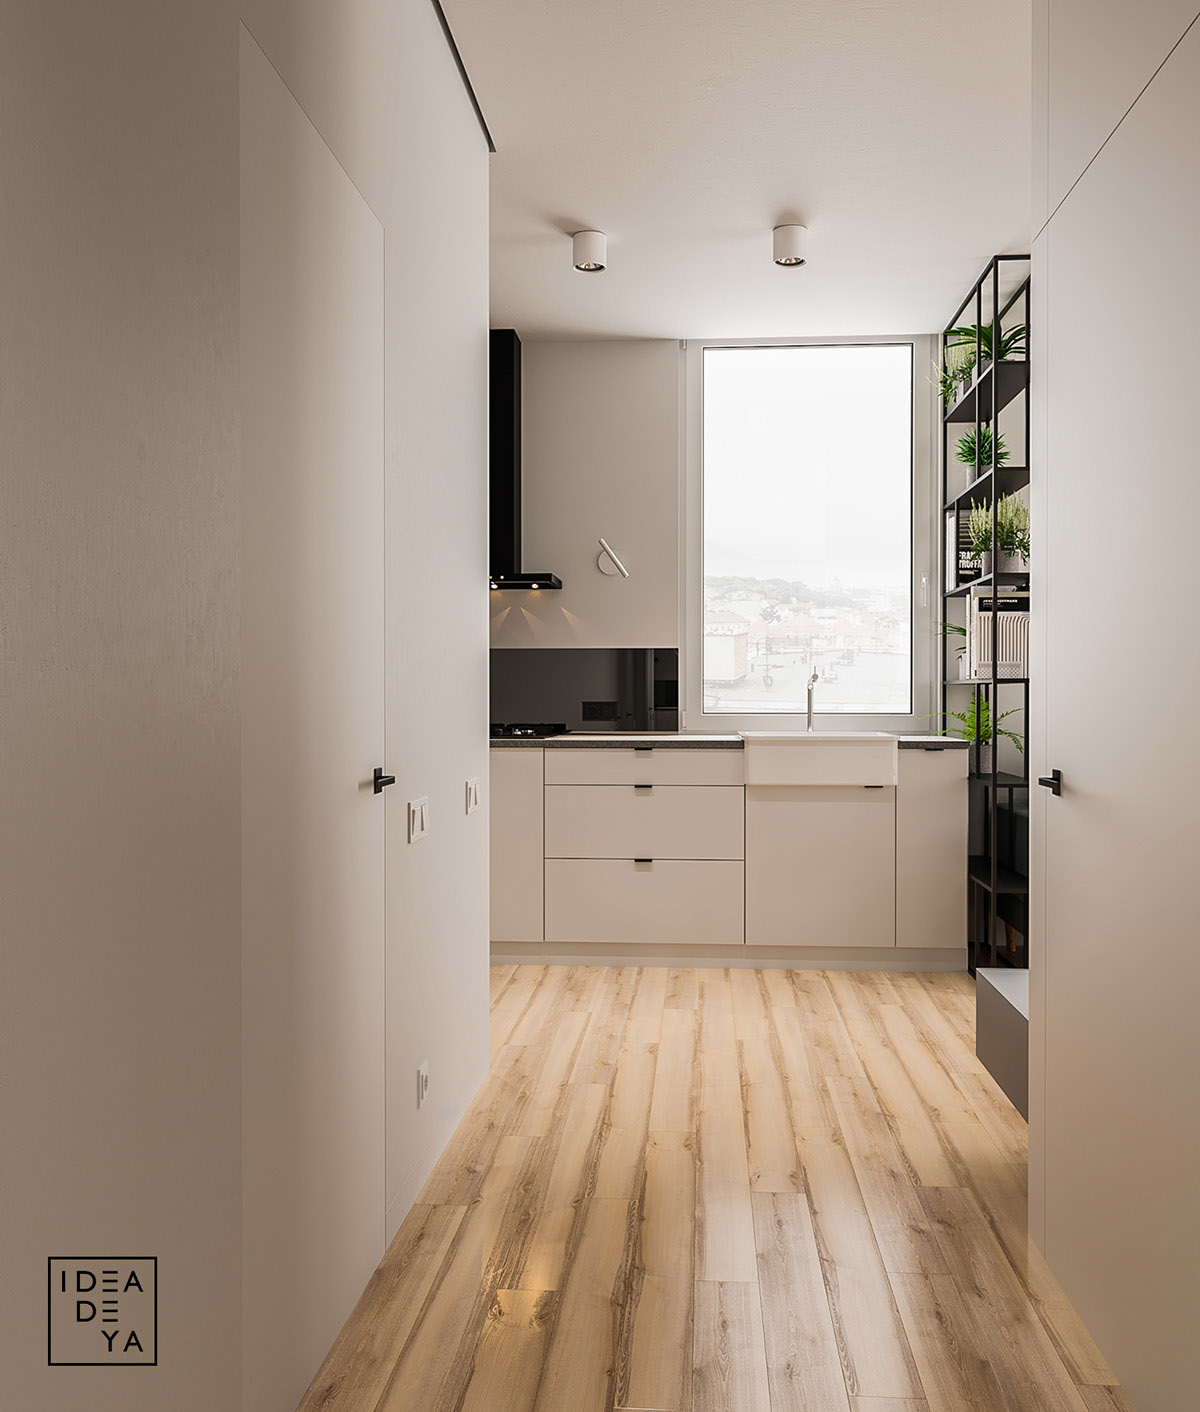 Modern And Youthful: 4 Small Apartments With Fierce Style images 24